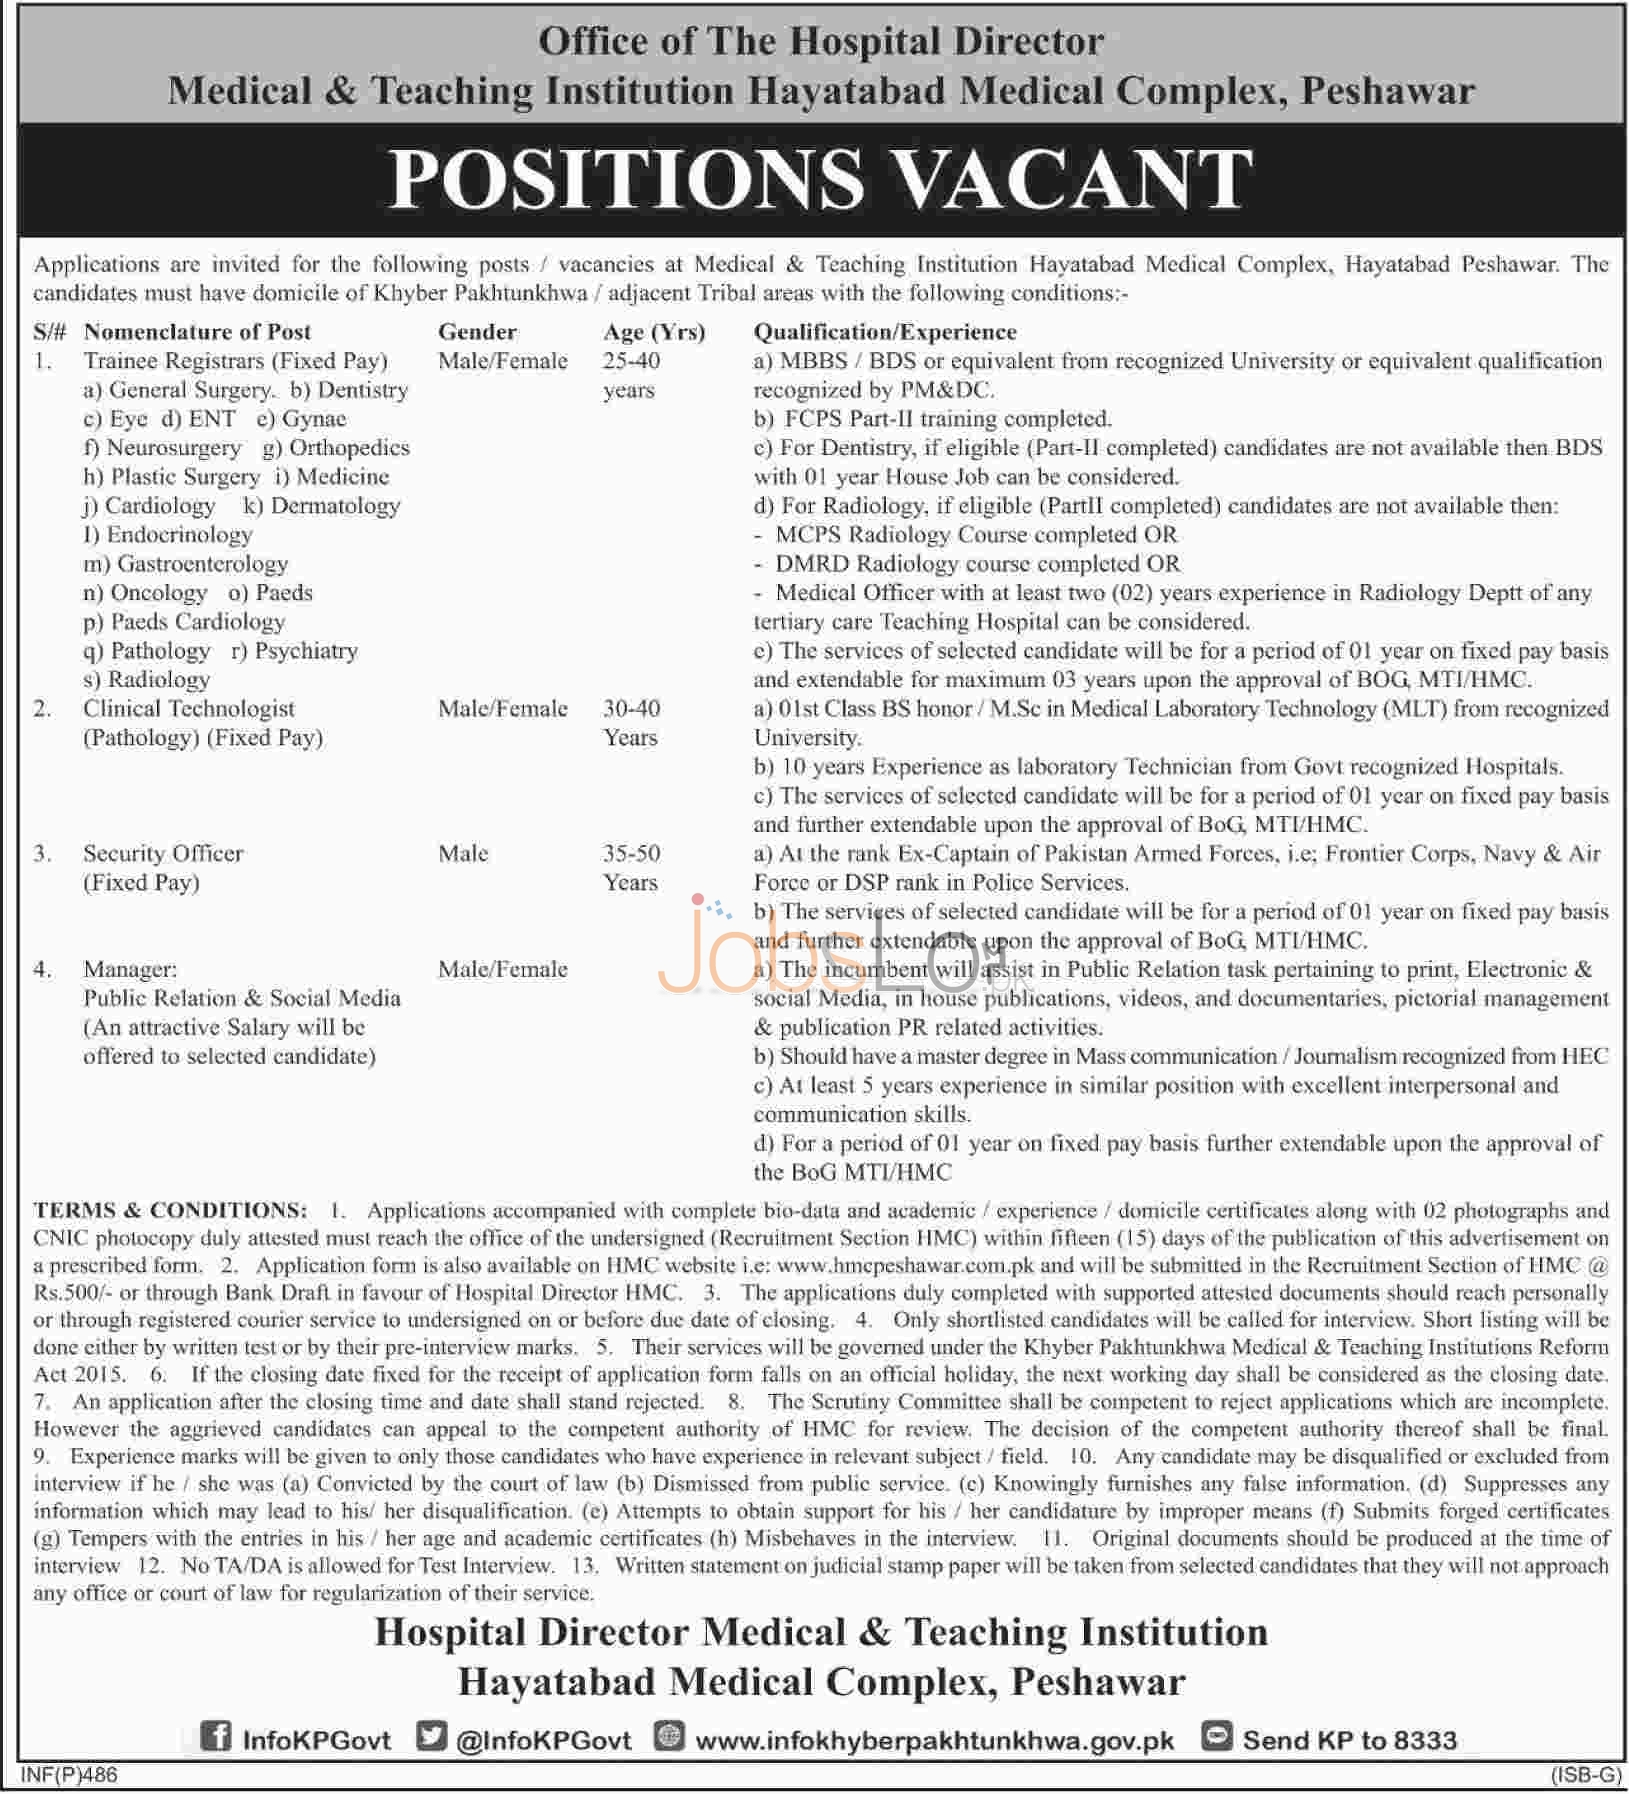 Apply Online in Peshawar Office Of The Hospital Director Medical & Teaching Institution 2016